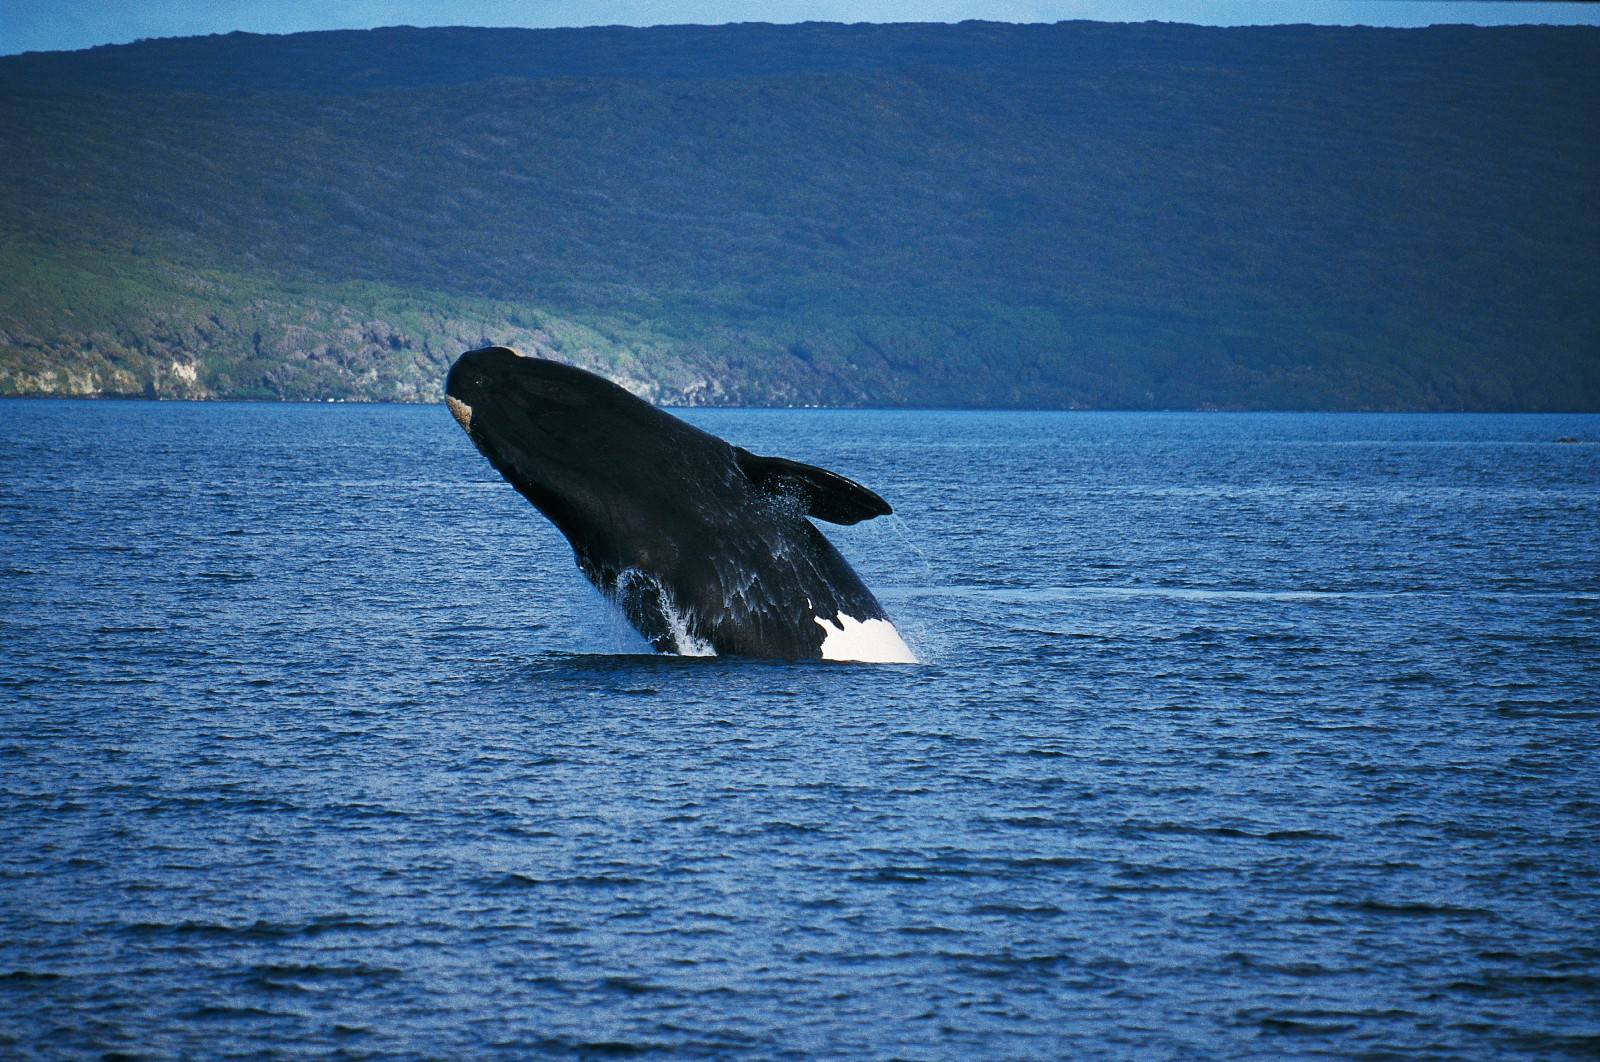 "A right whale rockets out of the sea at Port Ross, in the Auckland Islands. Breaching is just one of the athletic feats performed by the whales as part of their socialising. They also lift their heads vertically out of the water (spy-hopping"") and slap the water with their tail flukes (lob-tailing"")."